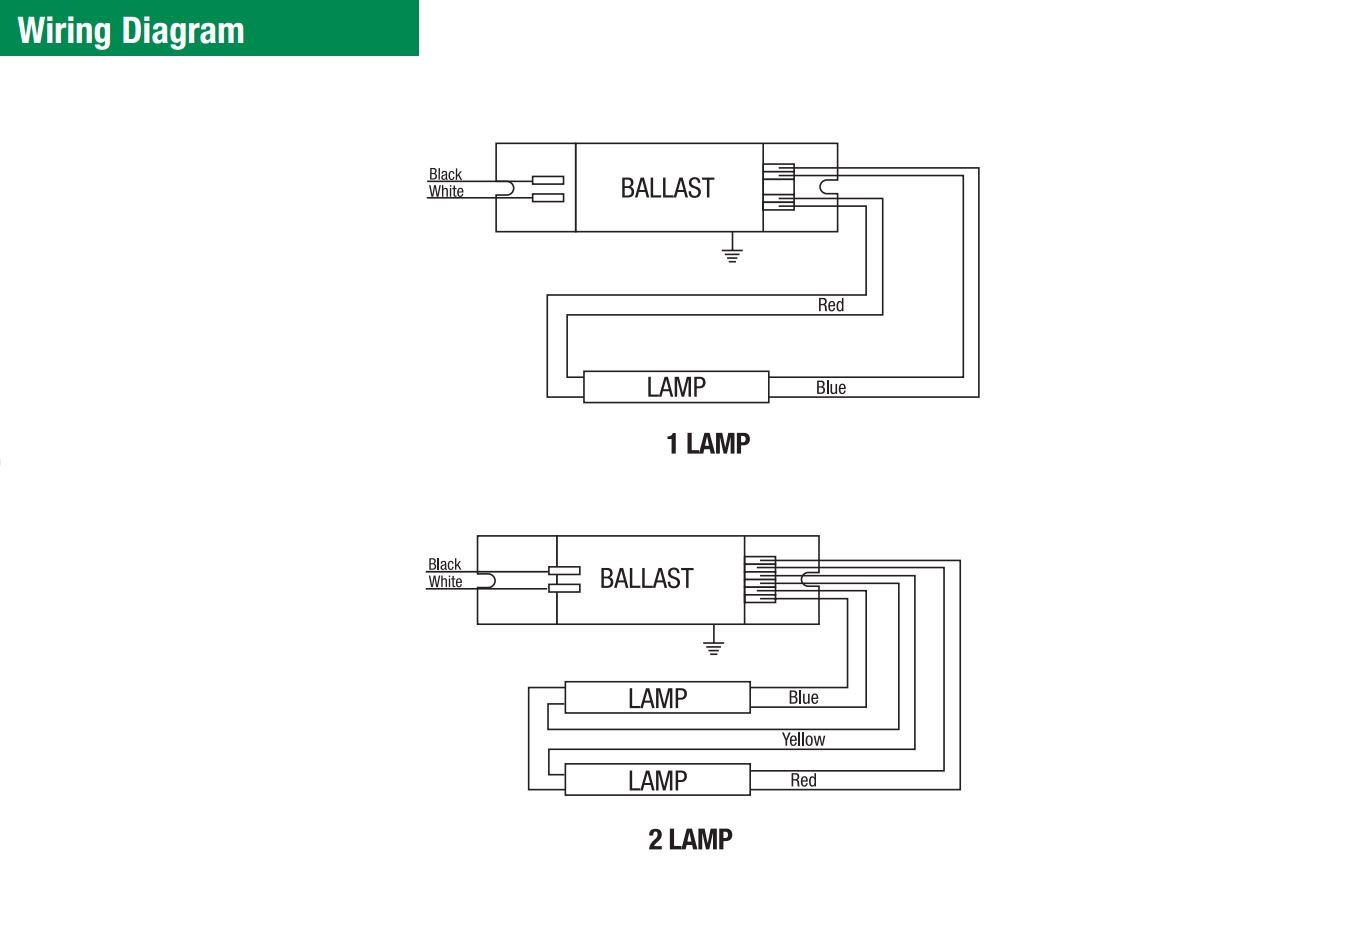 Metal Halide Wiring Diagram 240 Volt Electrical Diagrams Universal 12210237ctc S62 70 Watt Hid Hps Fcan Ballast 220